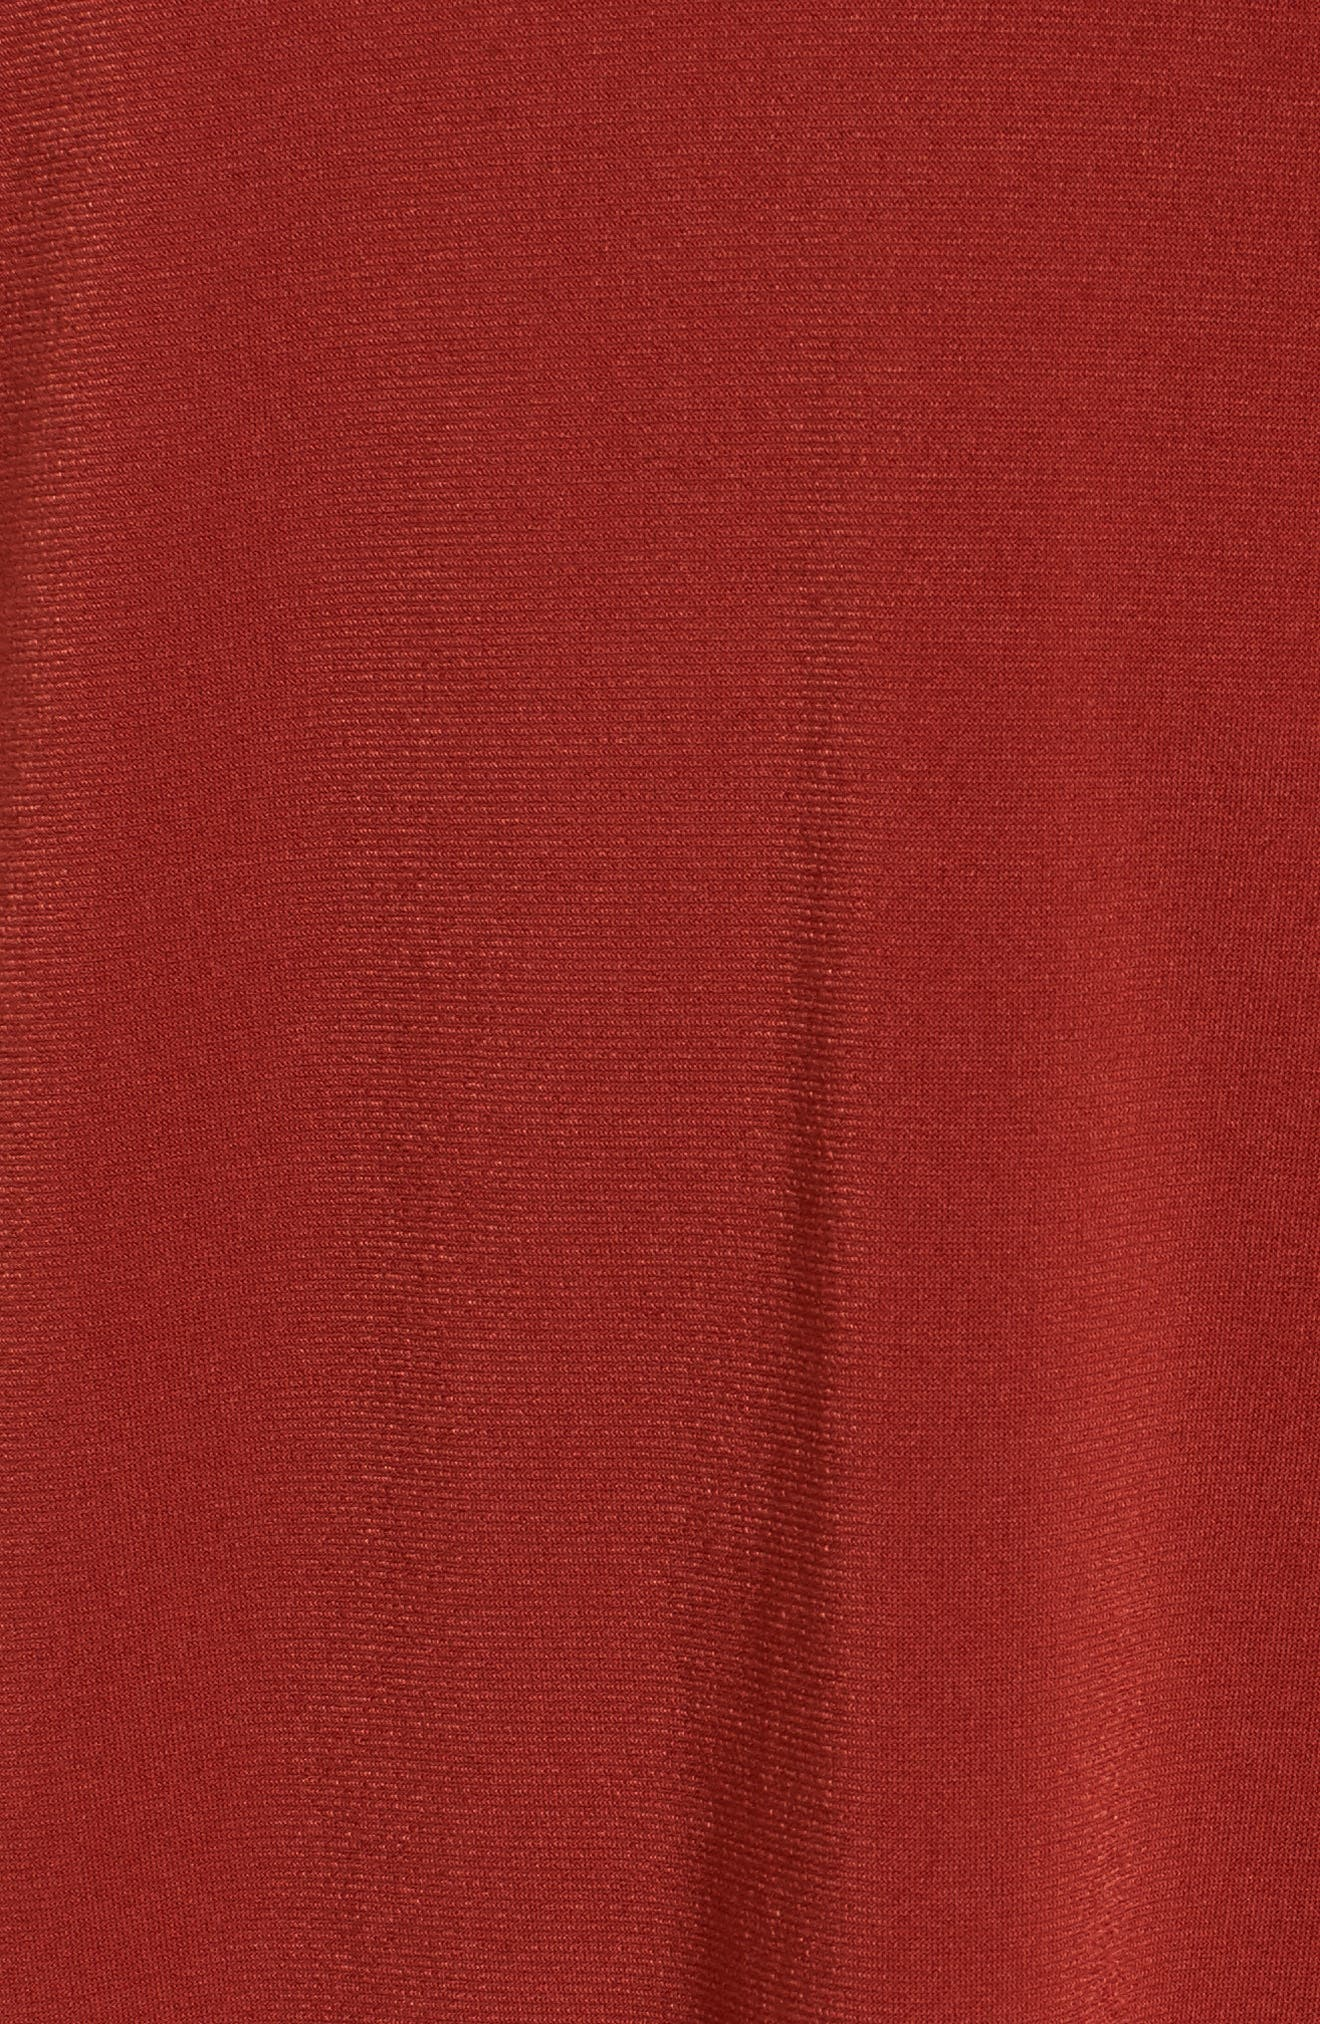 V-Neck A-Line Dress,                             Alternate thumbnail 5, color,                             Red Clay